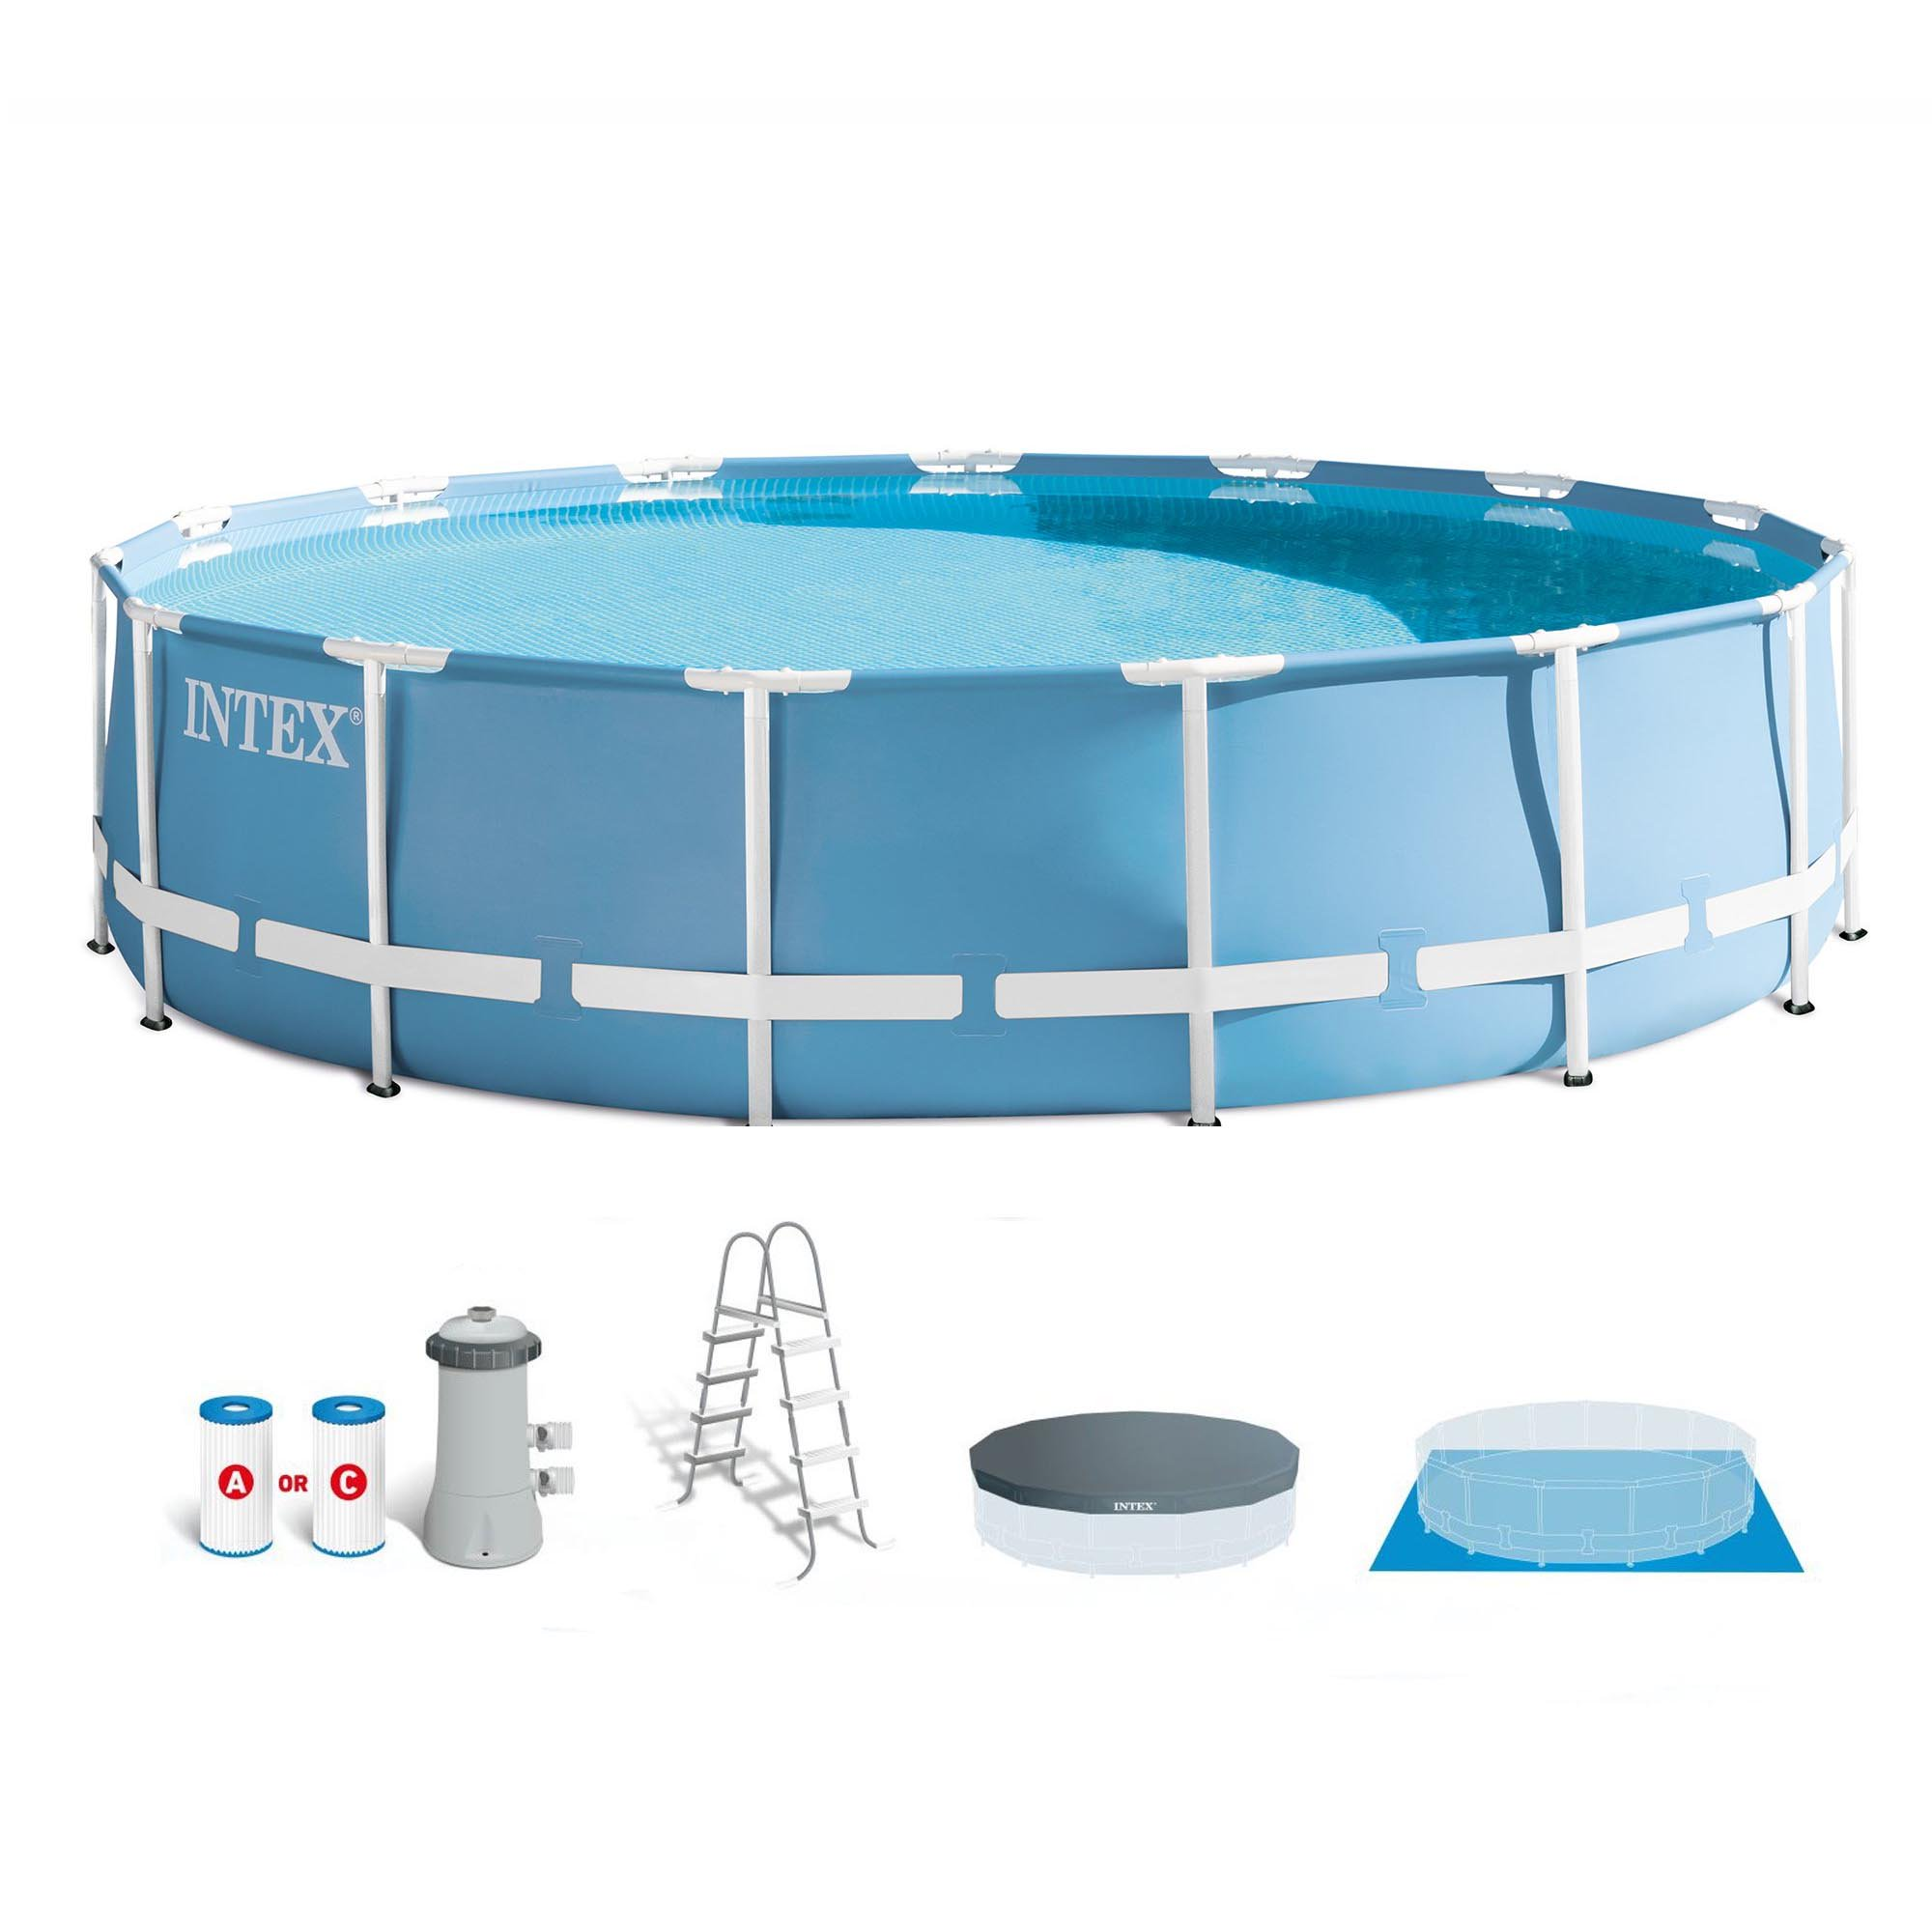 "Intex 15' x 48"" Prism Metal Frame Above Ground Swimming Pool Set & Ladder/Cover"